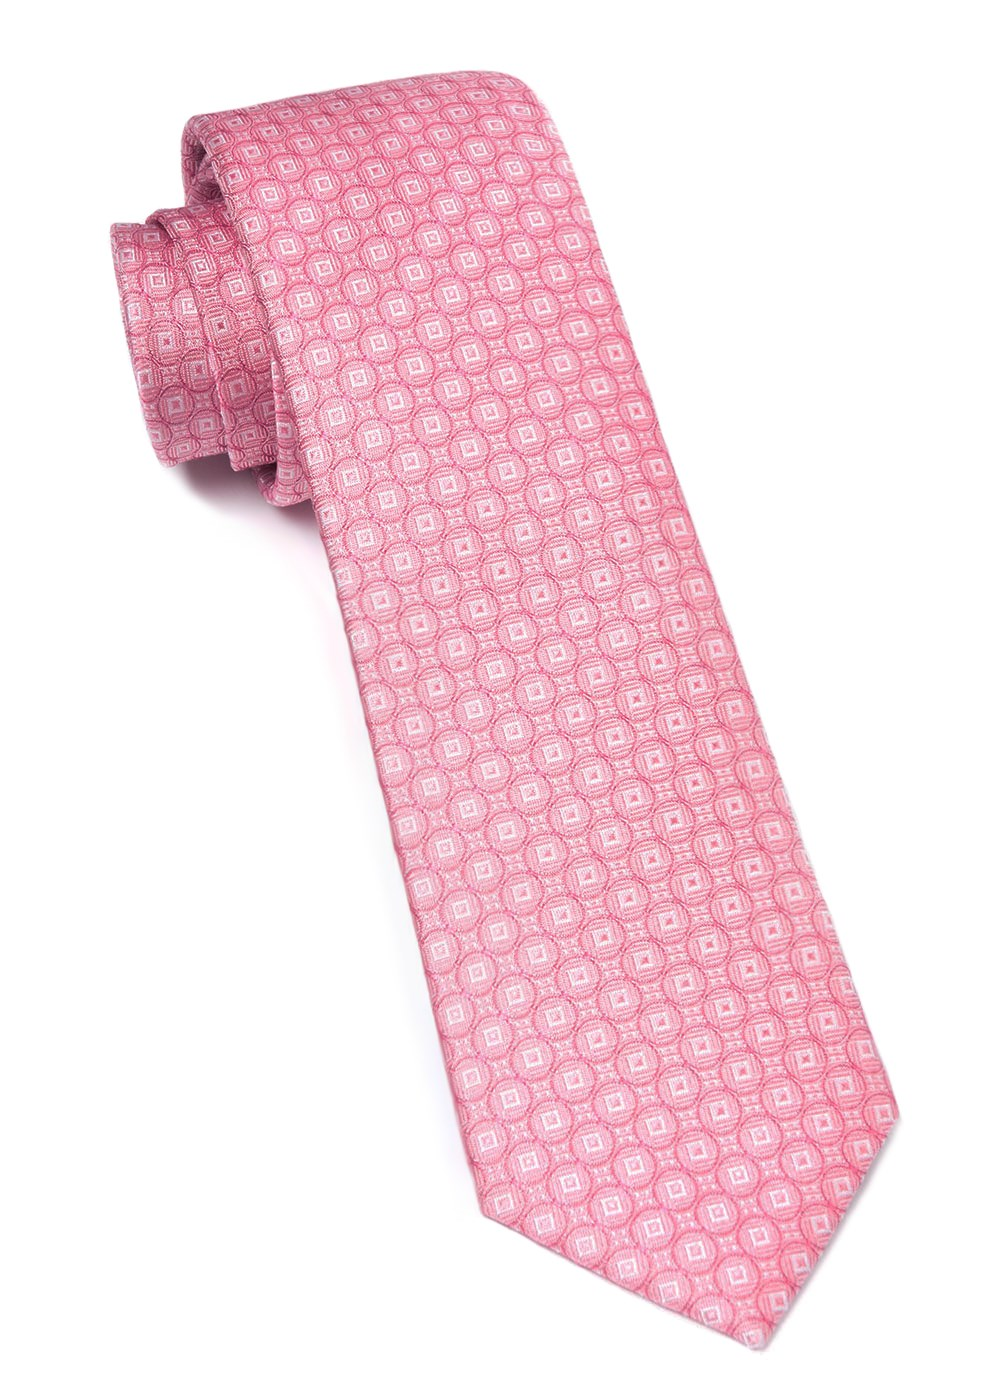 medallion form ties baby pink ties bow ties and